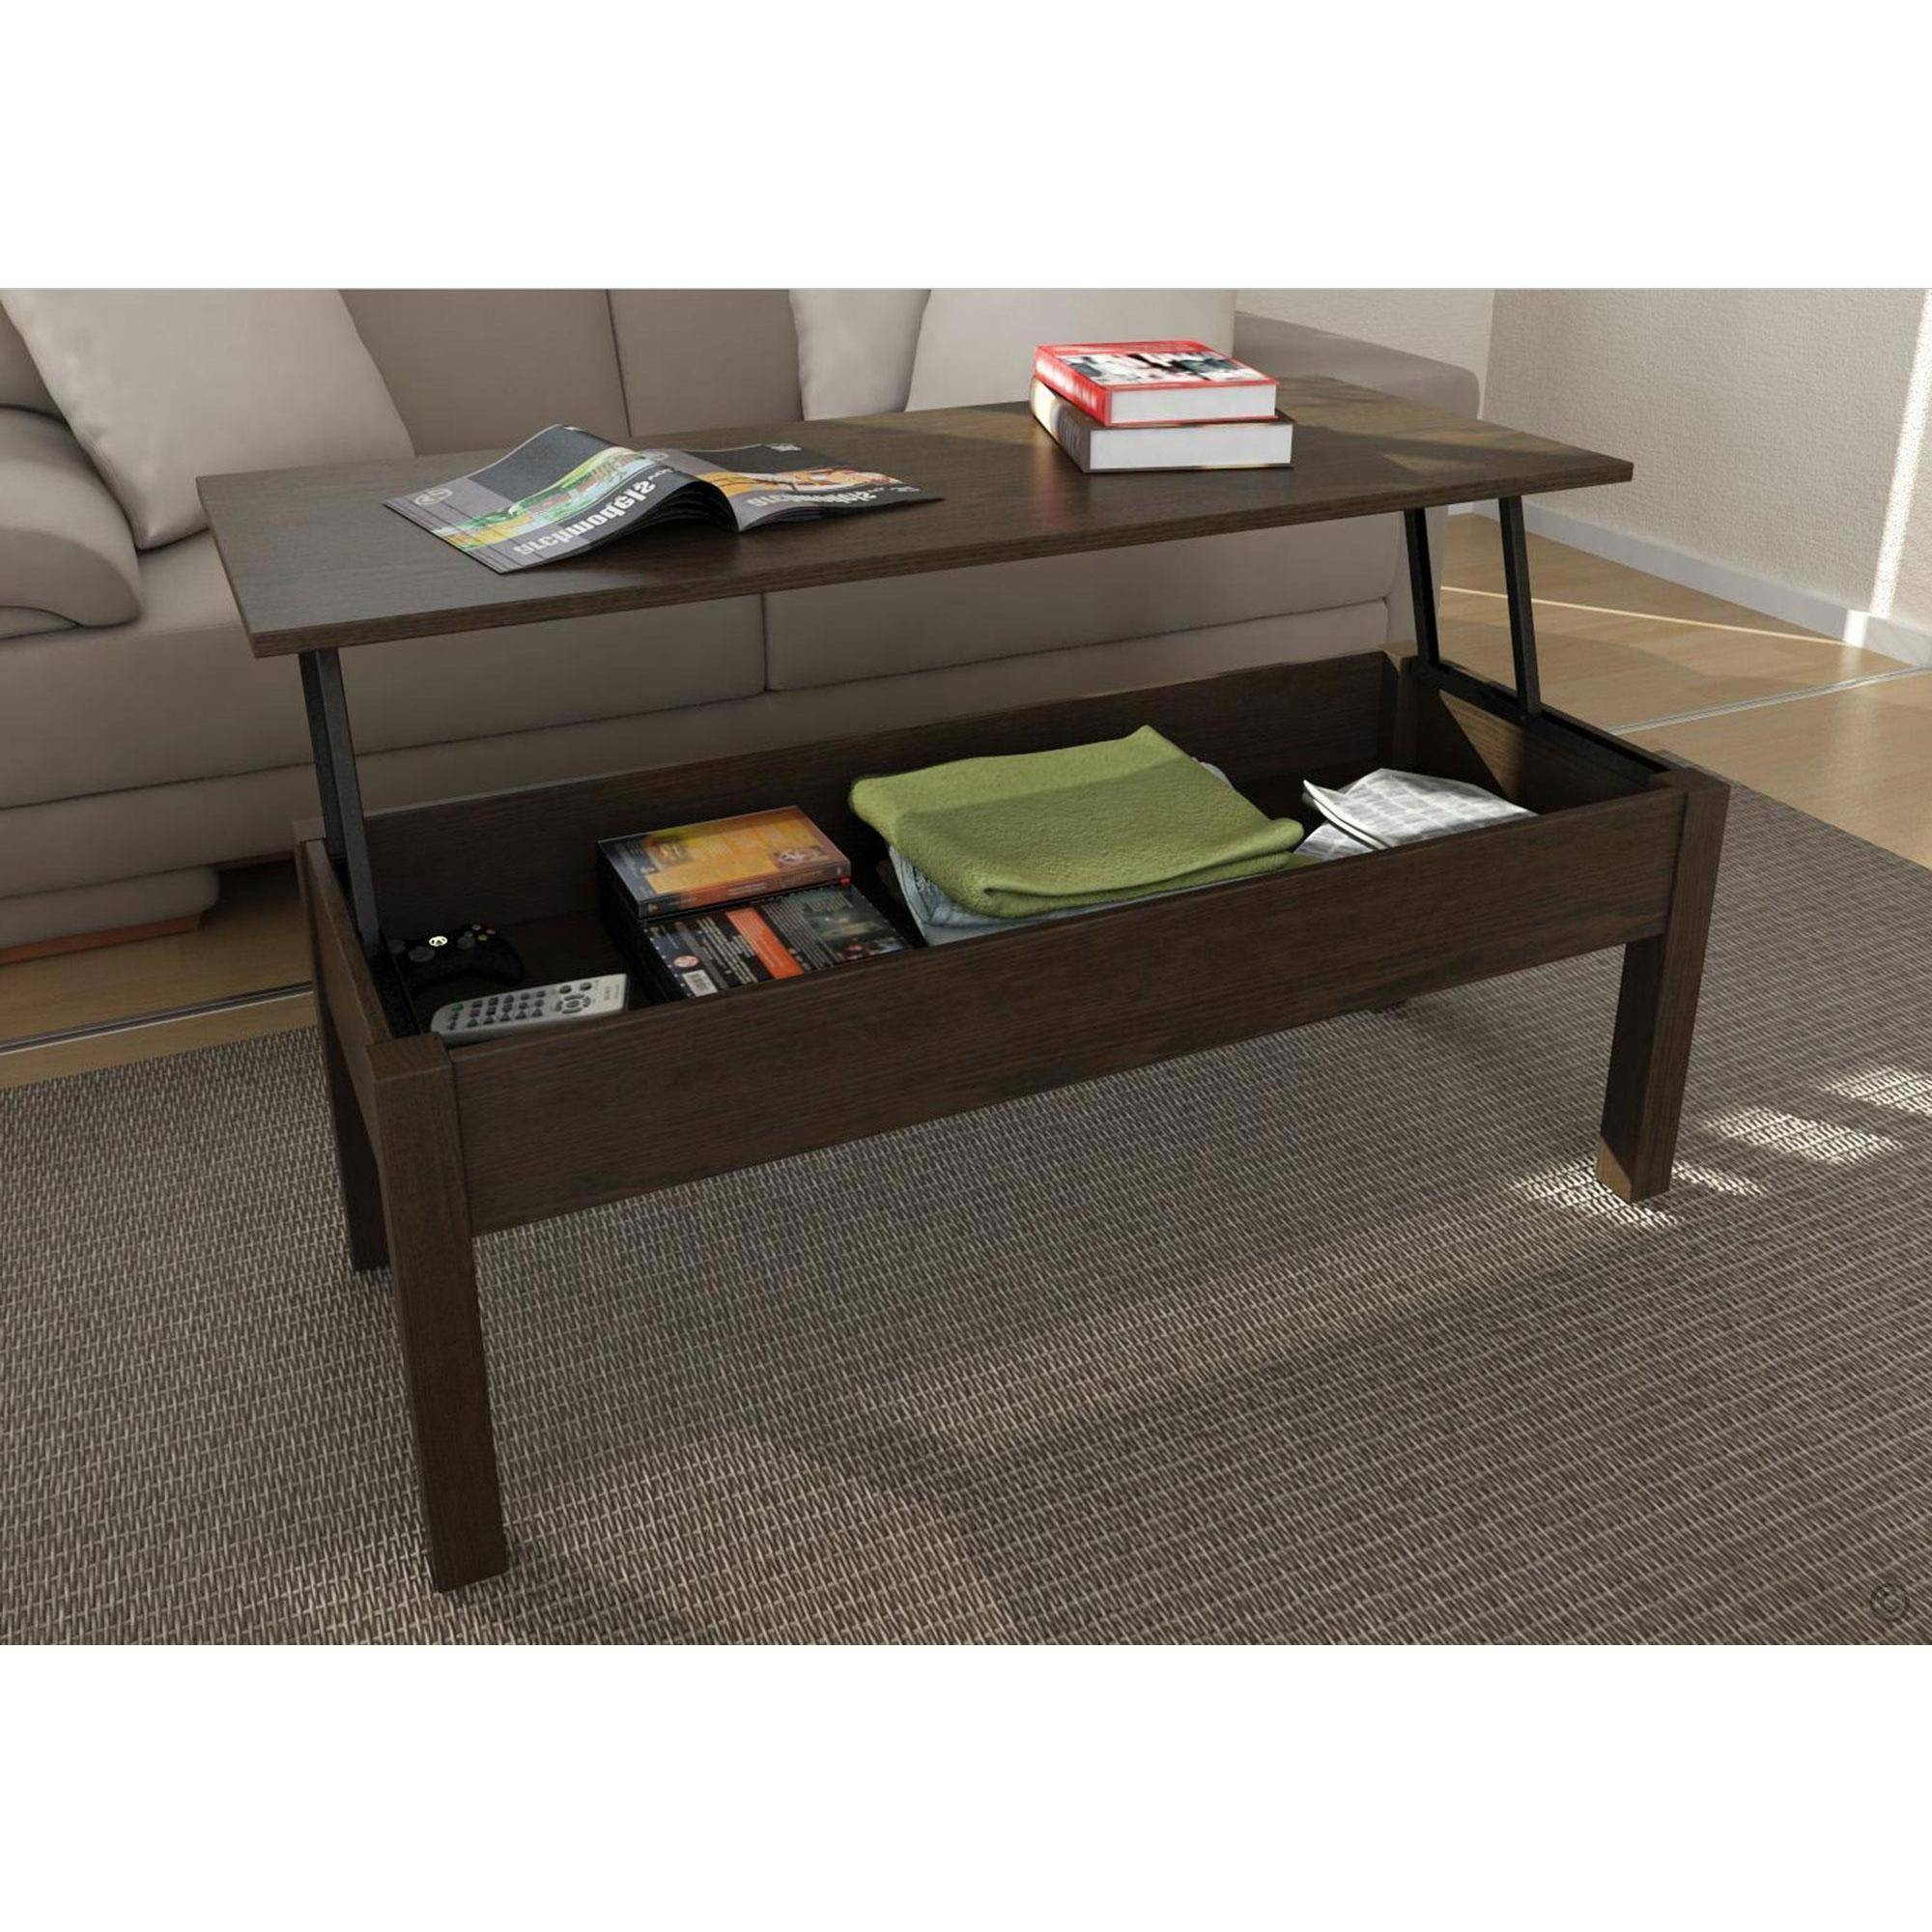 Mainstays Lift-Top Coffee Table, Multiple Colors - Walmart pertaining to Elevating Coffee Tables (Image 24 of 30)